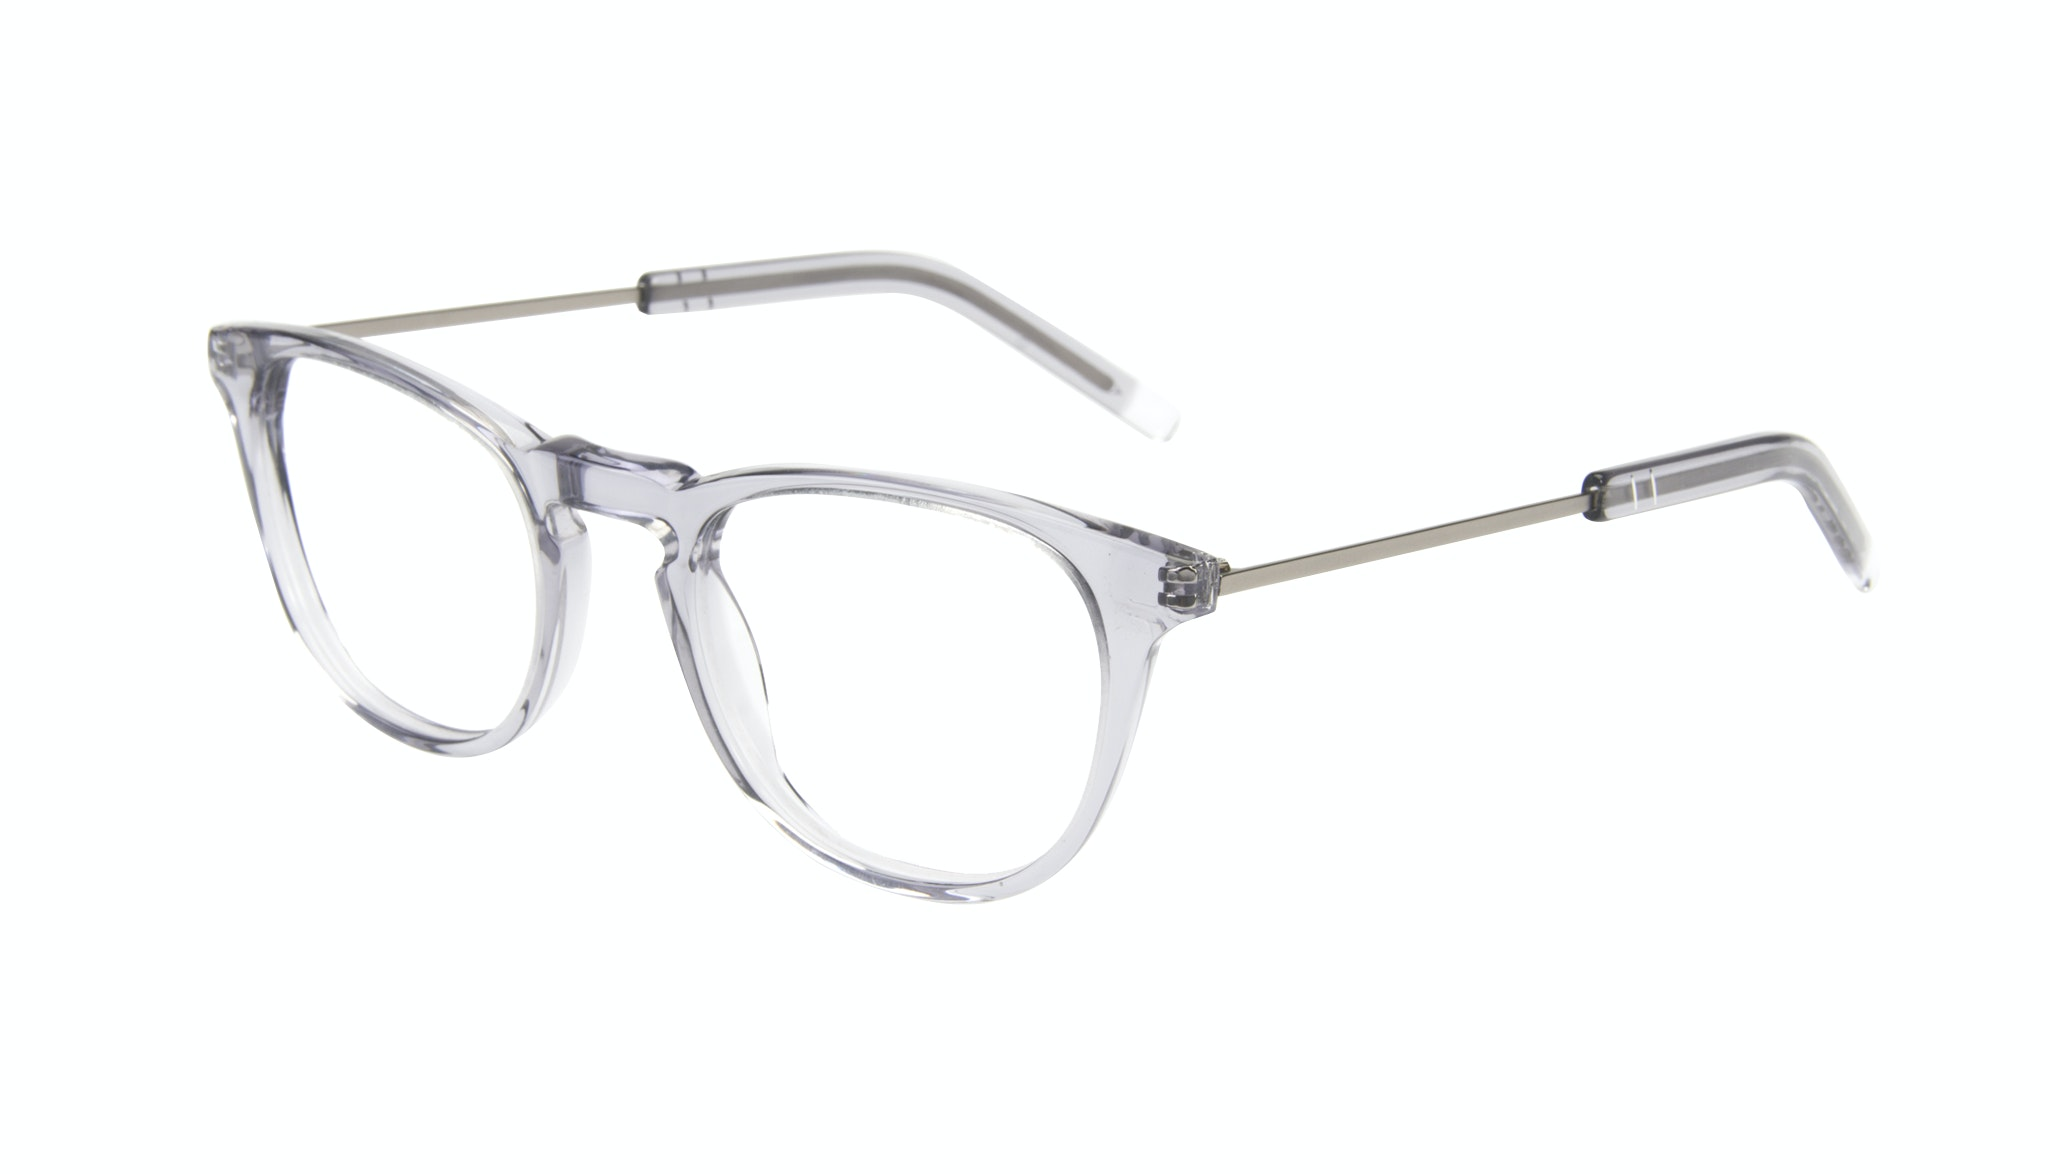 Affordable Fashion Glasses Rectangle Square Eyeglasses Men Sturdy Steel Tilt